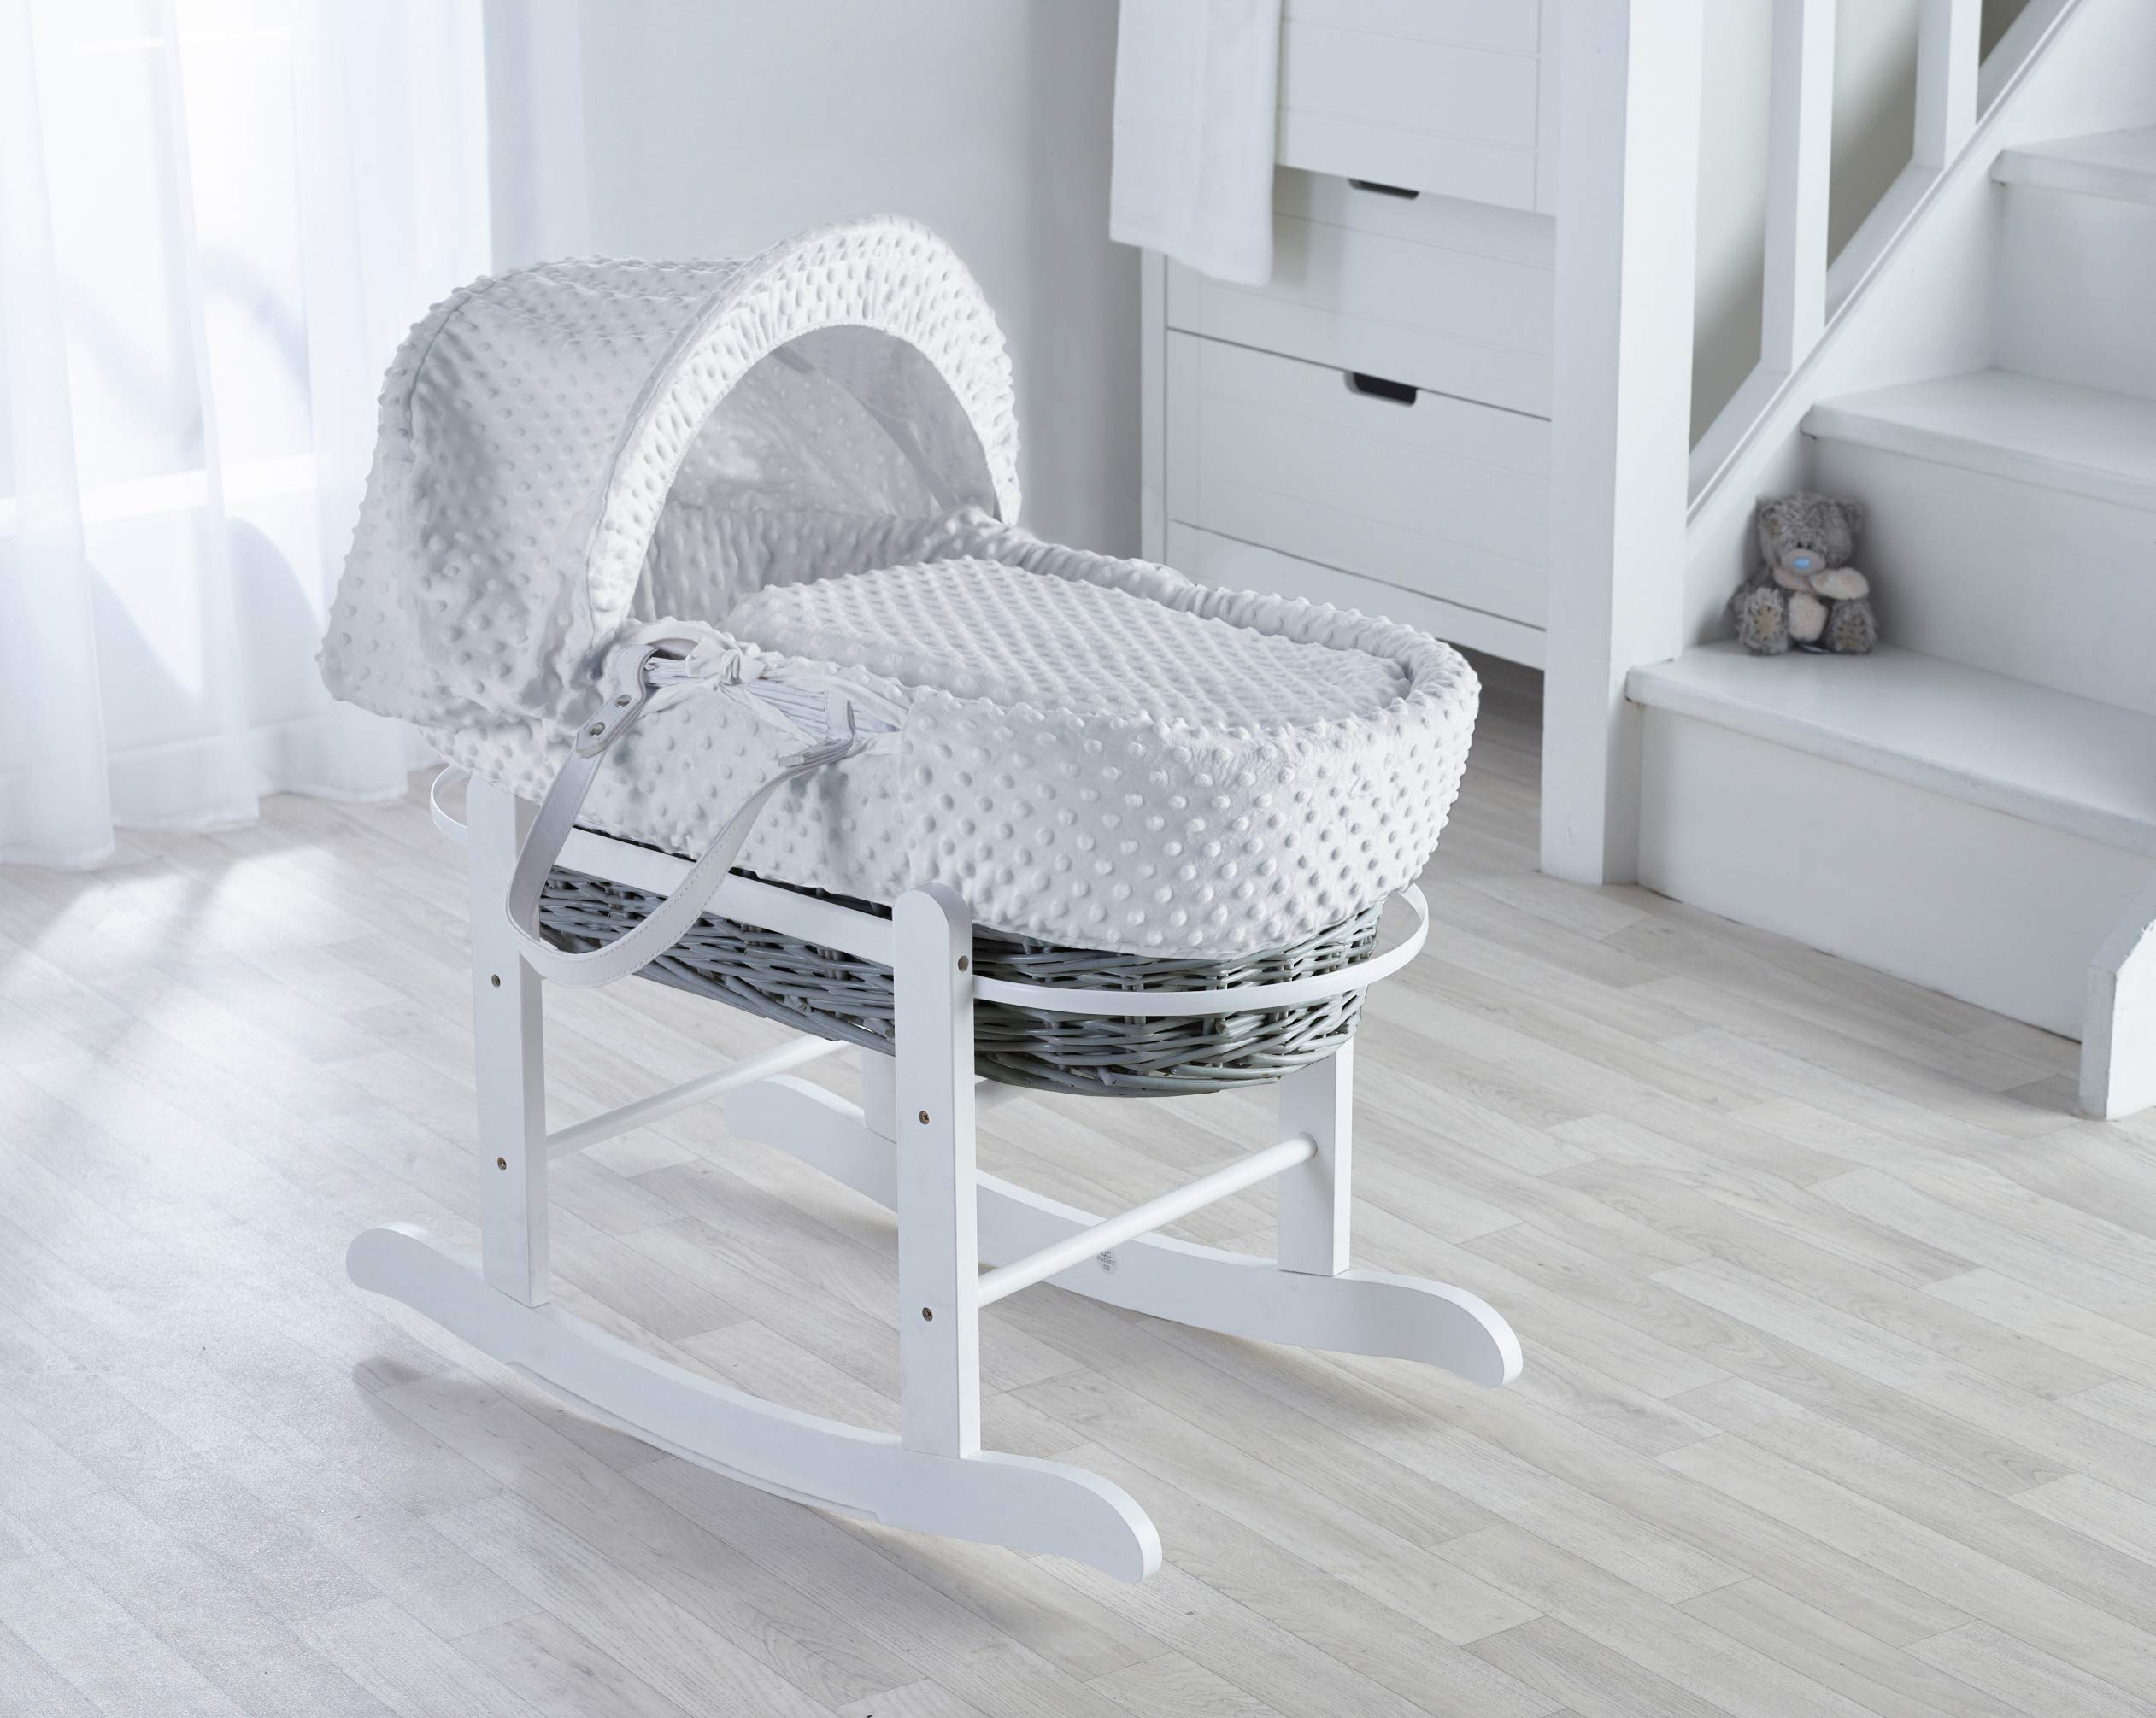 White Dimple on Grey Wicker Padded Moses Basket & Deluxe White Rocking Stand. Elegant Baby Suitable from newborn for up to 9kg, this Moses Basket uses Easy-care Poly Cotton with a soft padding surround Suitable from newborn to 9 months It also includes a comfortable mattress and an adjustable hood perfect to create a cosy sleeping space for your precious little one 1